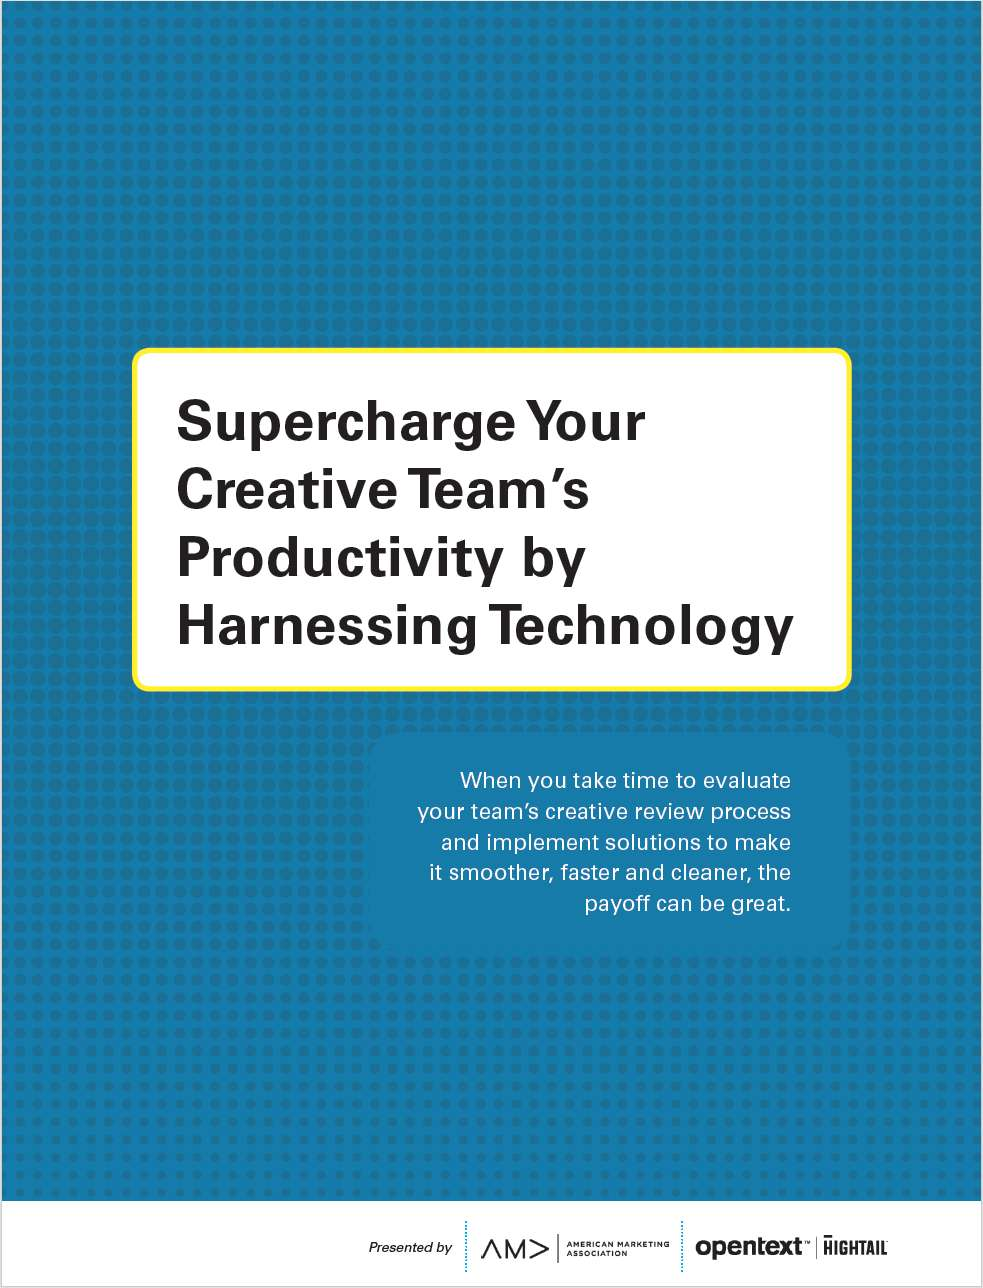 How to supercharge creative productivity by harnessing technology